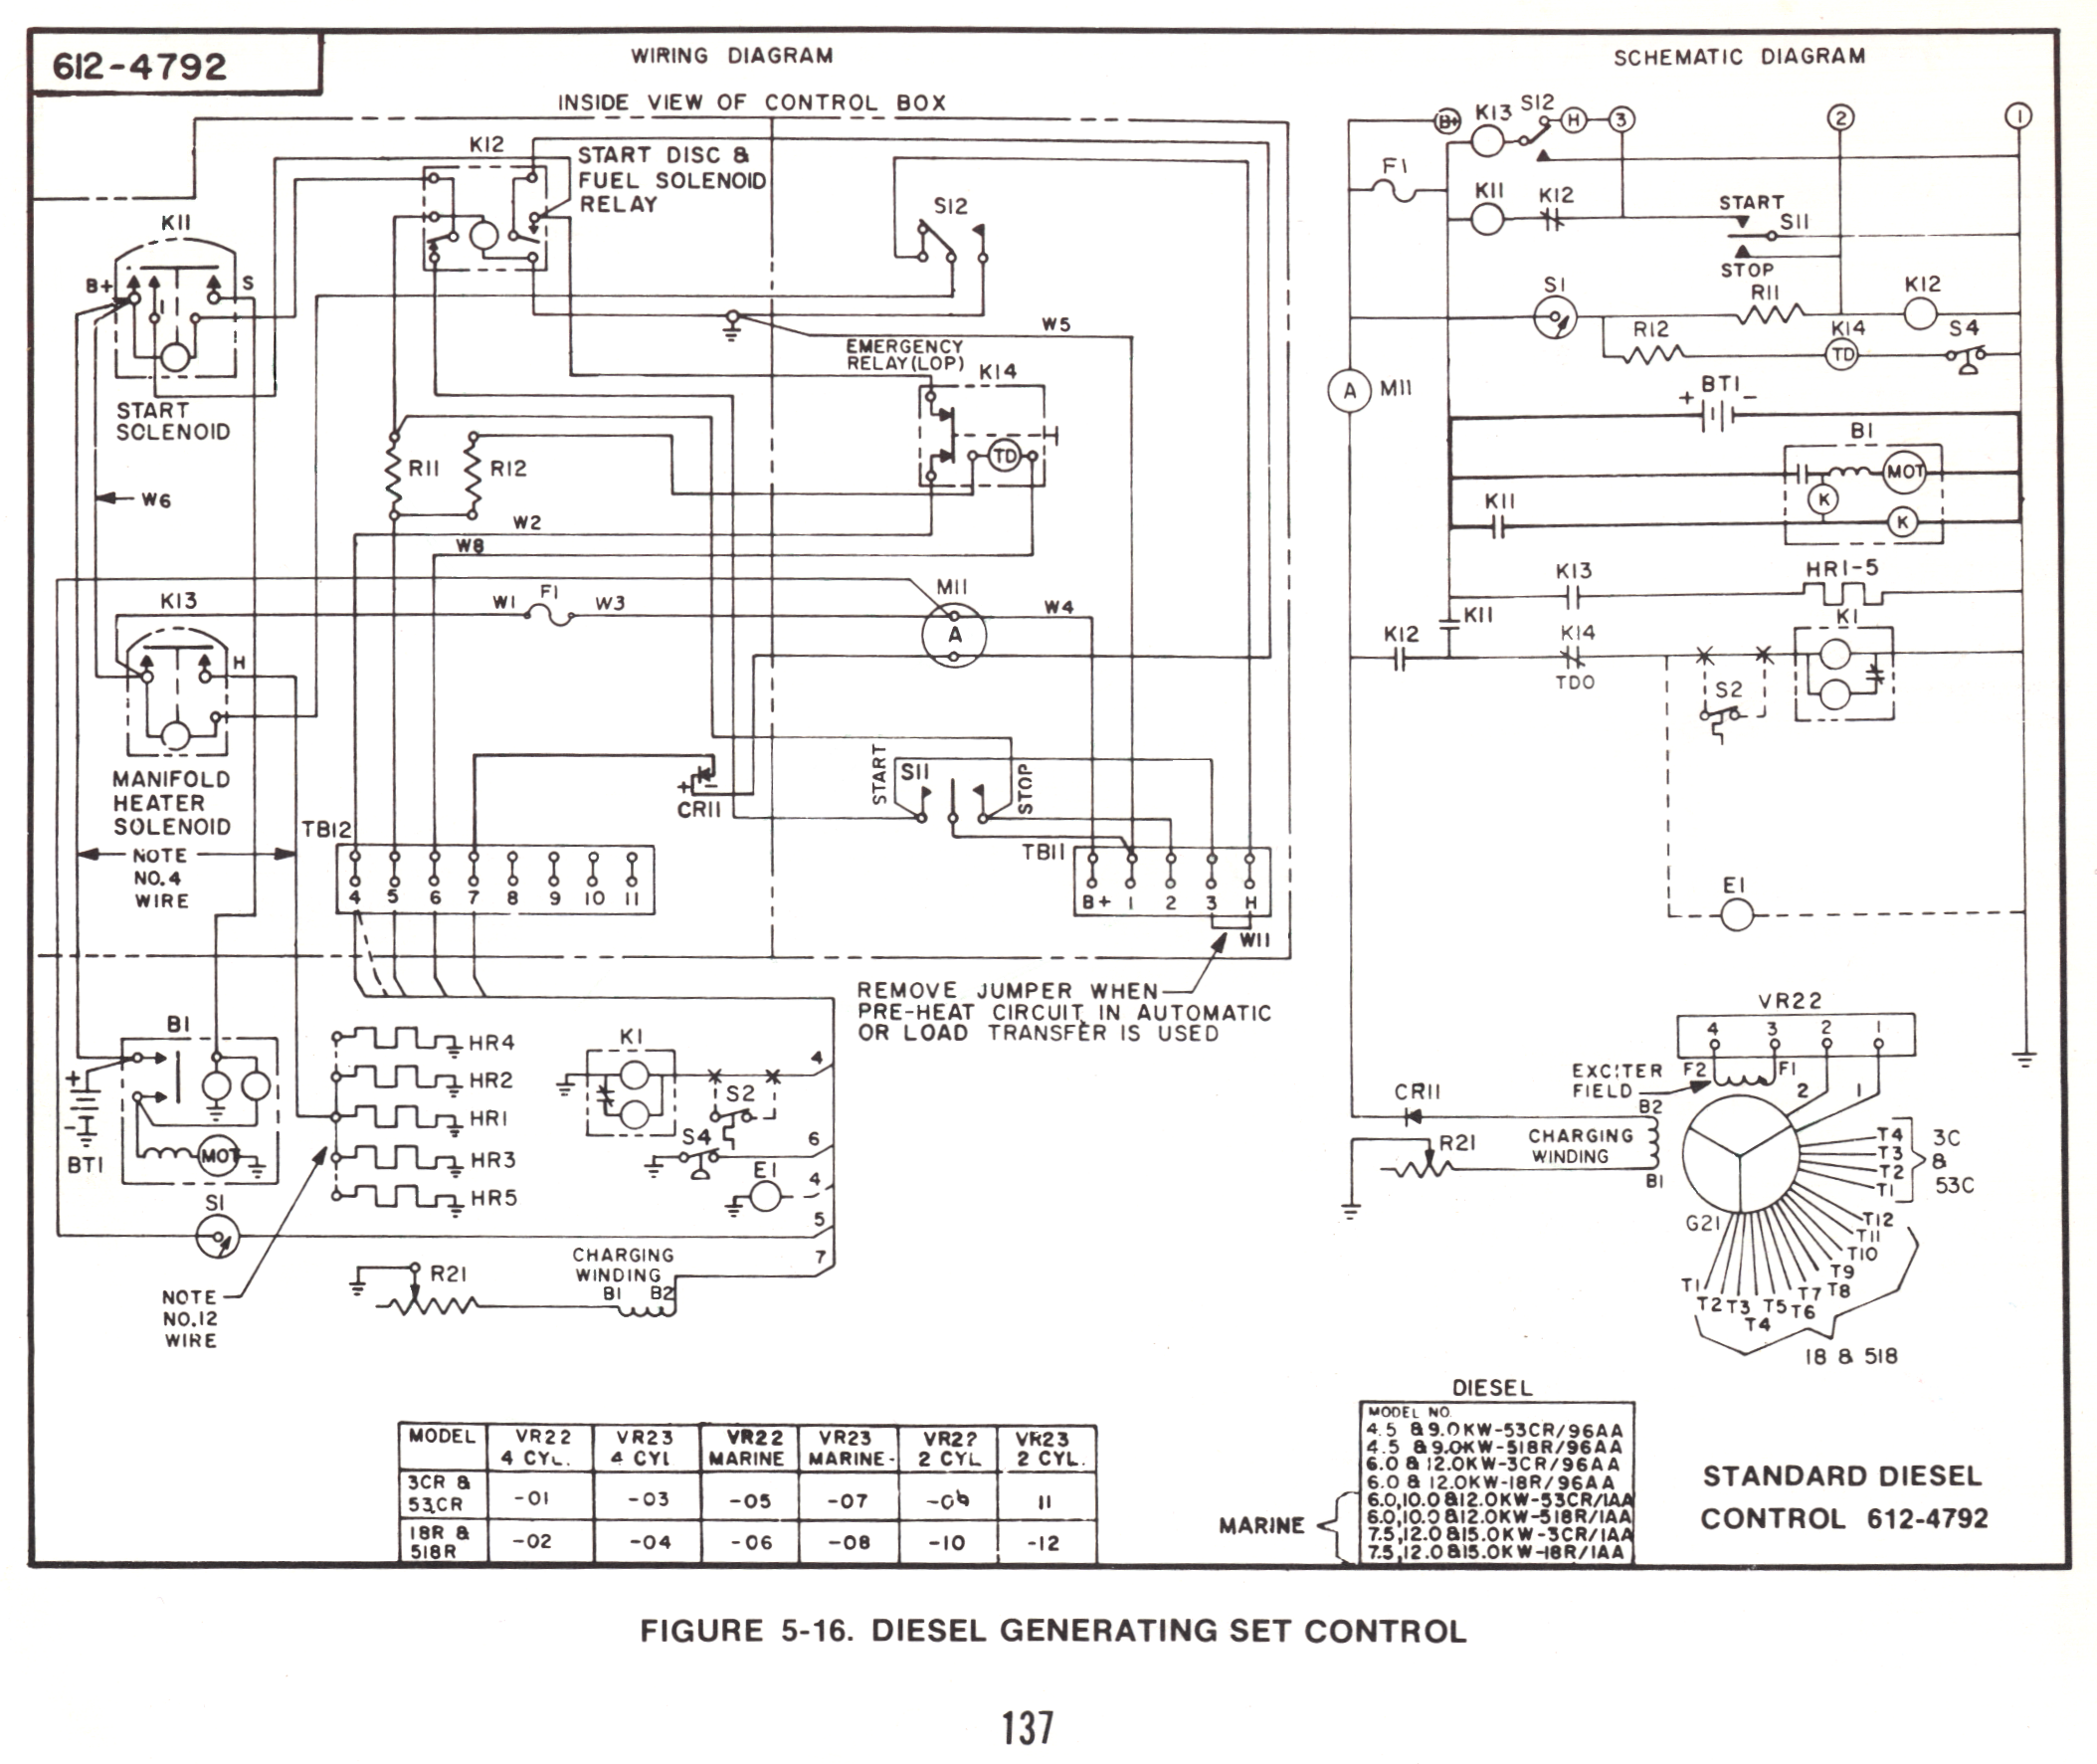 Onan_Diesel_Controls_612 4792_b onan stuff onan emerald 3 wiring diagram at edmiracle.co